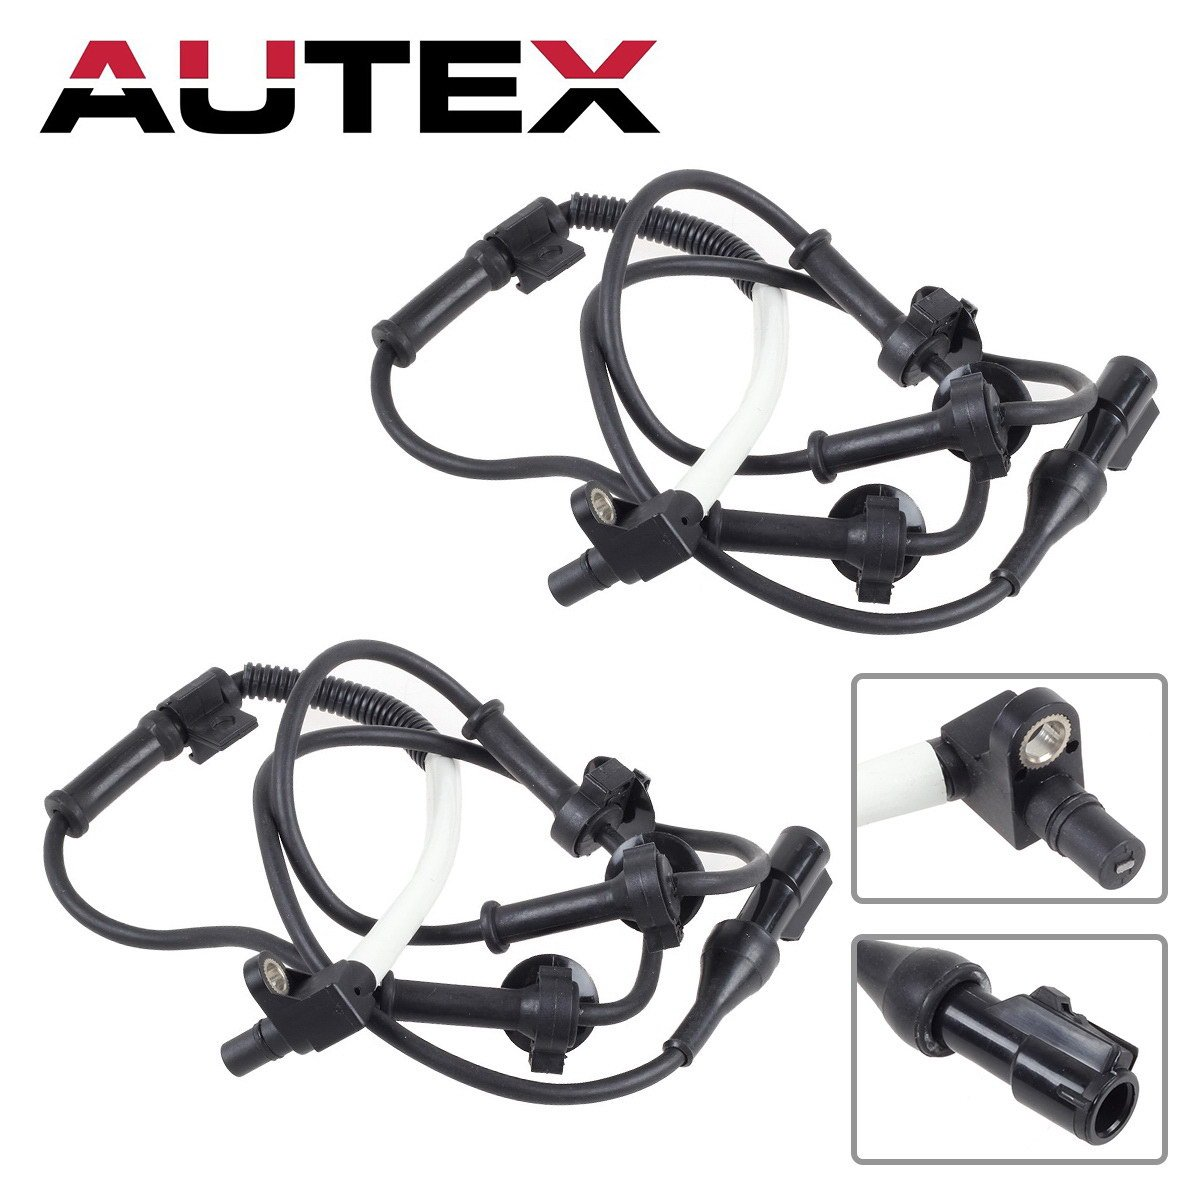 AUTEX 2PCS Front Left + Front Right ABS Wheel Speed Brake Sensor XL2Z2C204AB compatible with 1995-2001 Ford Explorer 4WD/2001 2002 2003 2004 2005 Ford Explorer Sport Trac 4.0L Ranger Mazda B4000 4WD PartsSquare